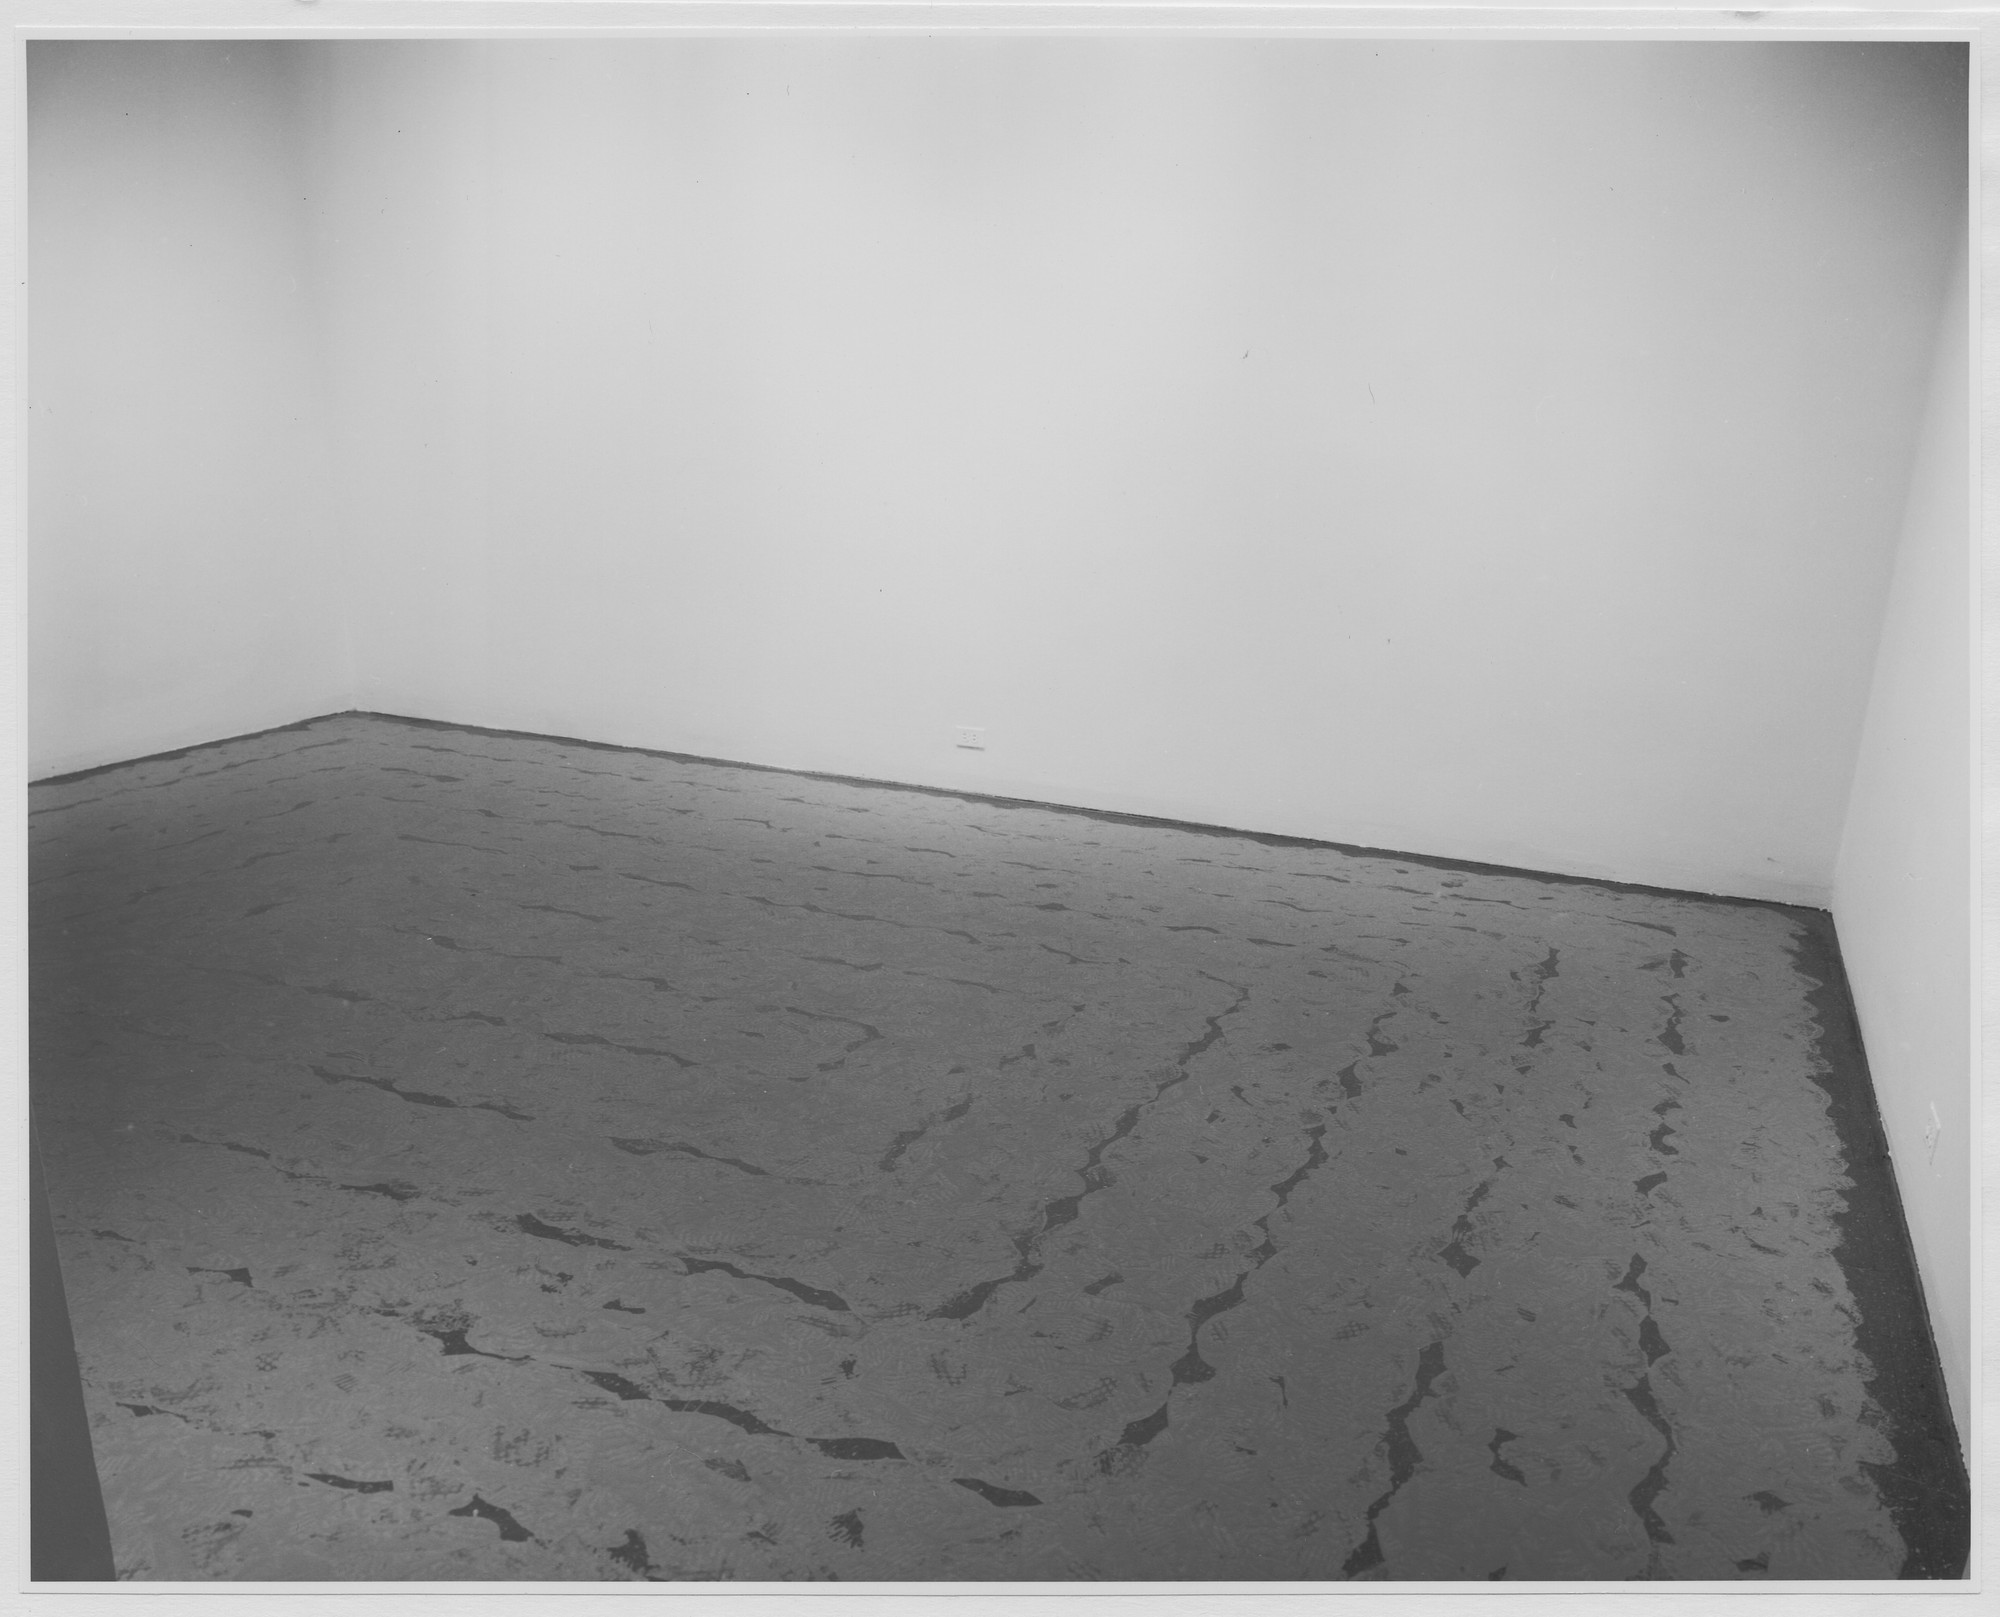 "Installation view of the exhibition, ""Projects: Richard Long."" March 14, 1972–April 17, 1972. Photographic Archive. The Museum of Modern Art Archives, New York. IN1001a.1. Photograph by James Mathews."